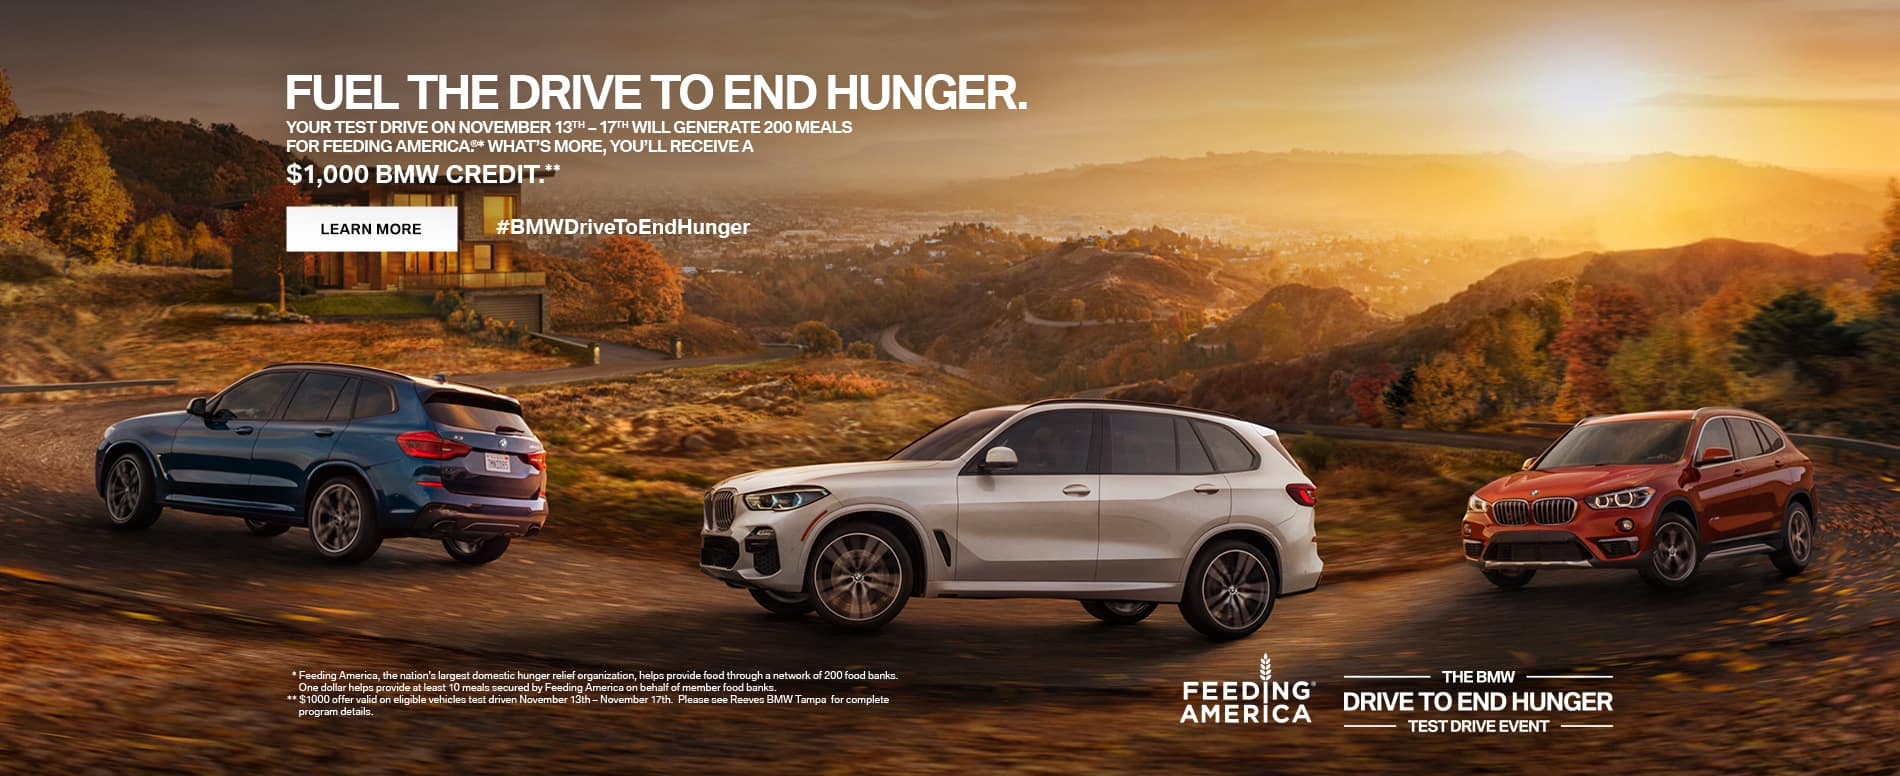 BMW Test Drive to End Hunger